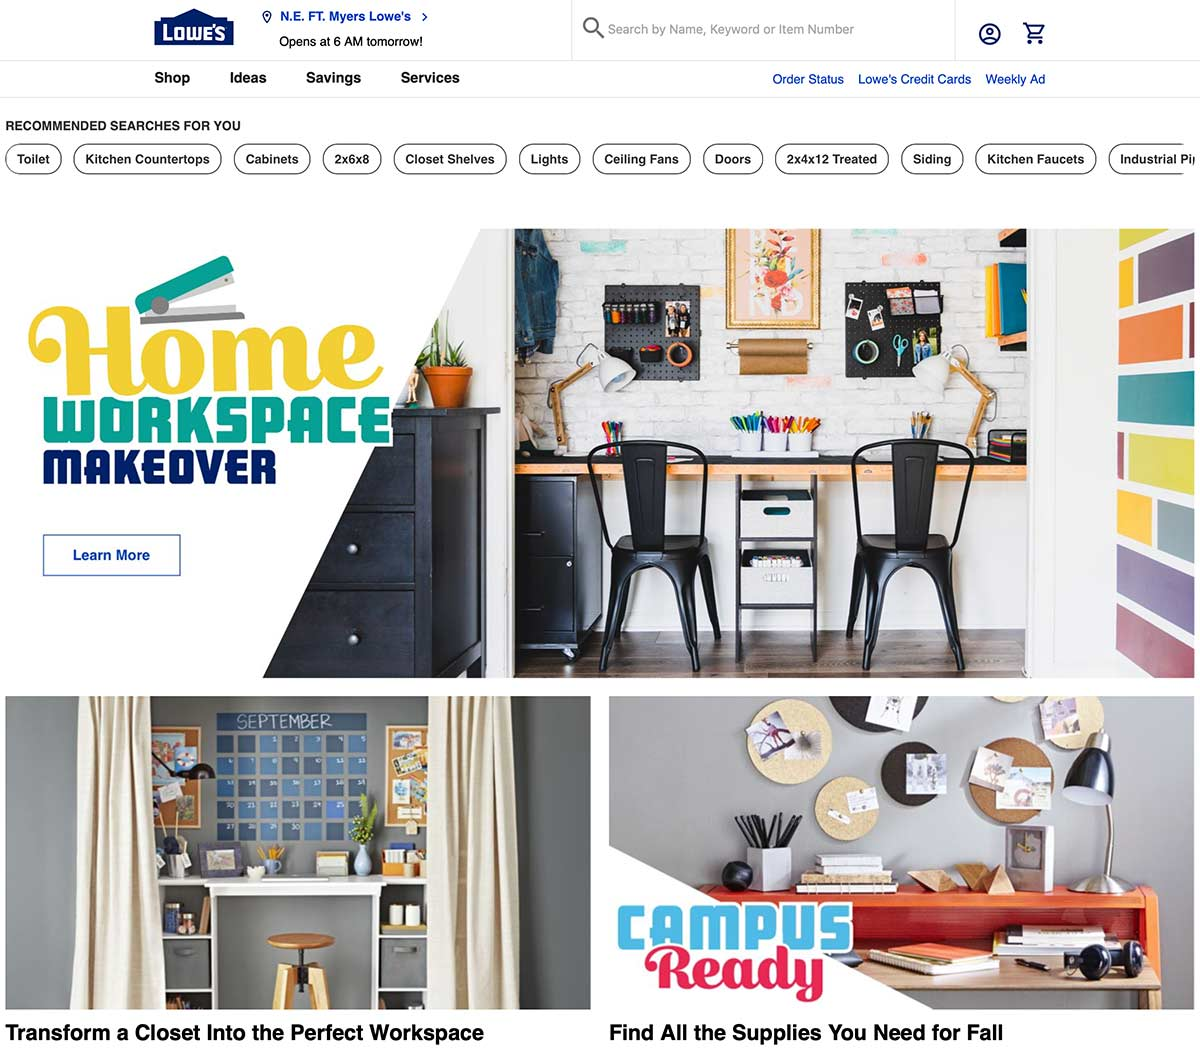 Lowe's home page featuring home office space